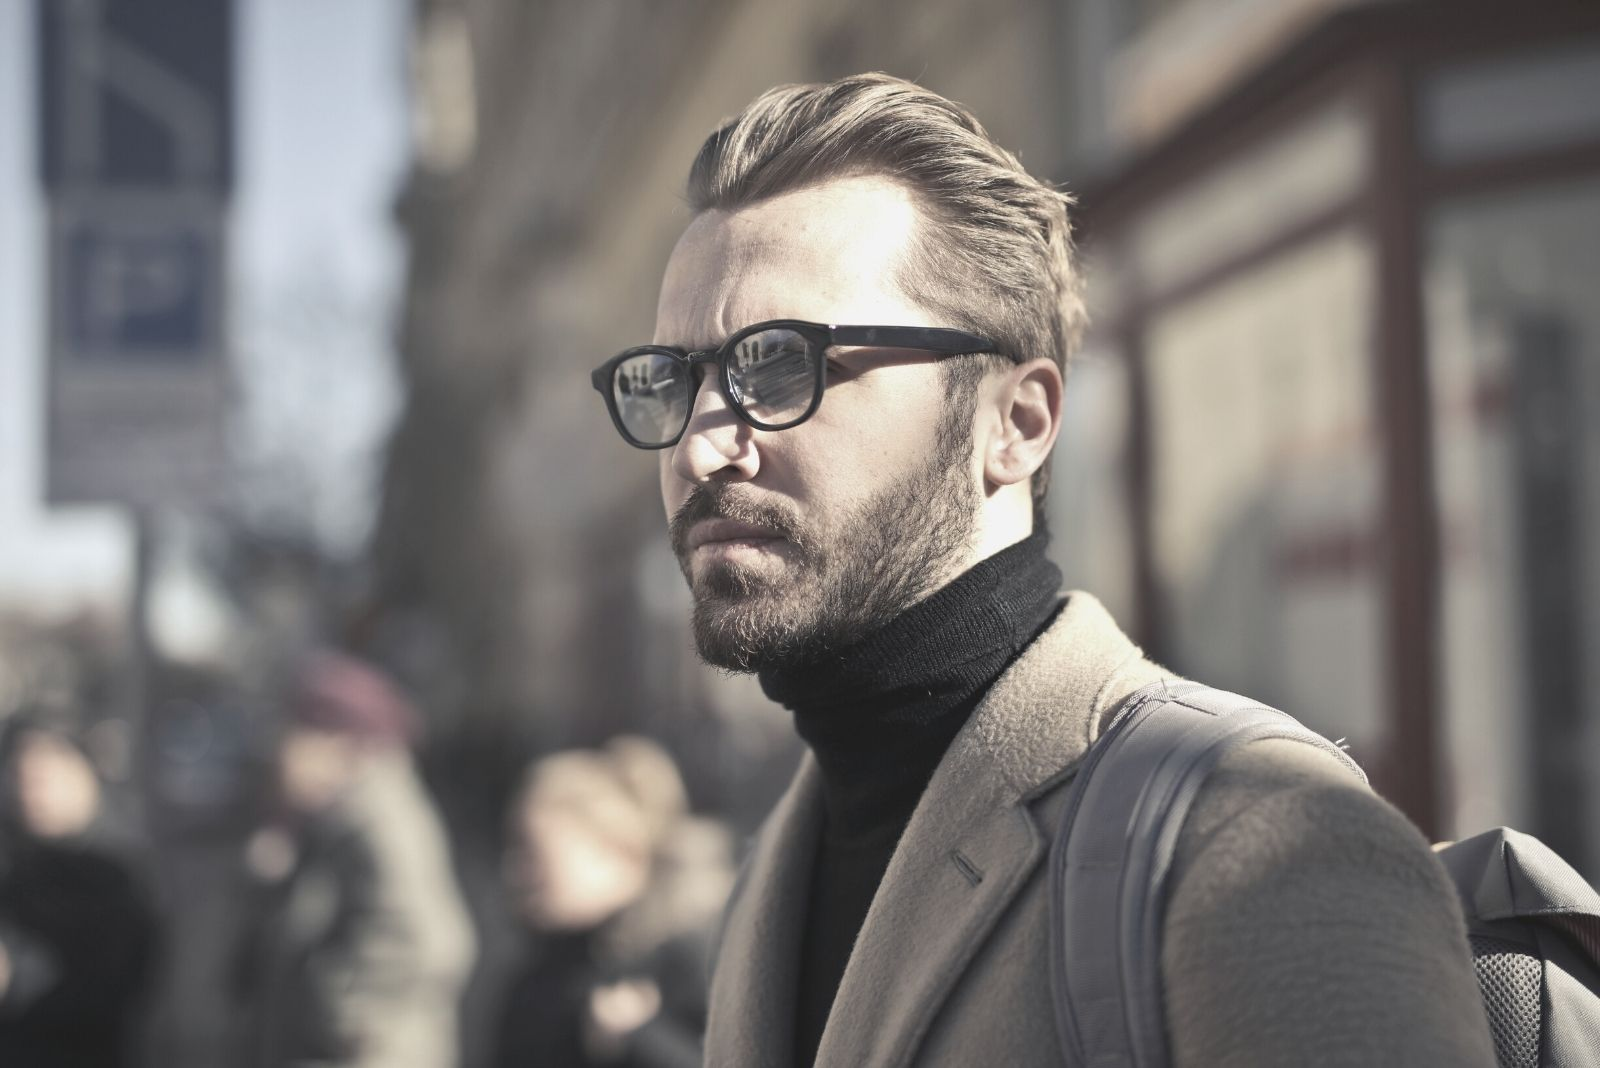 man wearing eyeglasses with suit in fashion standing outdoors